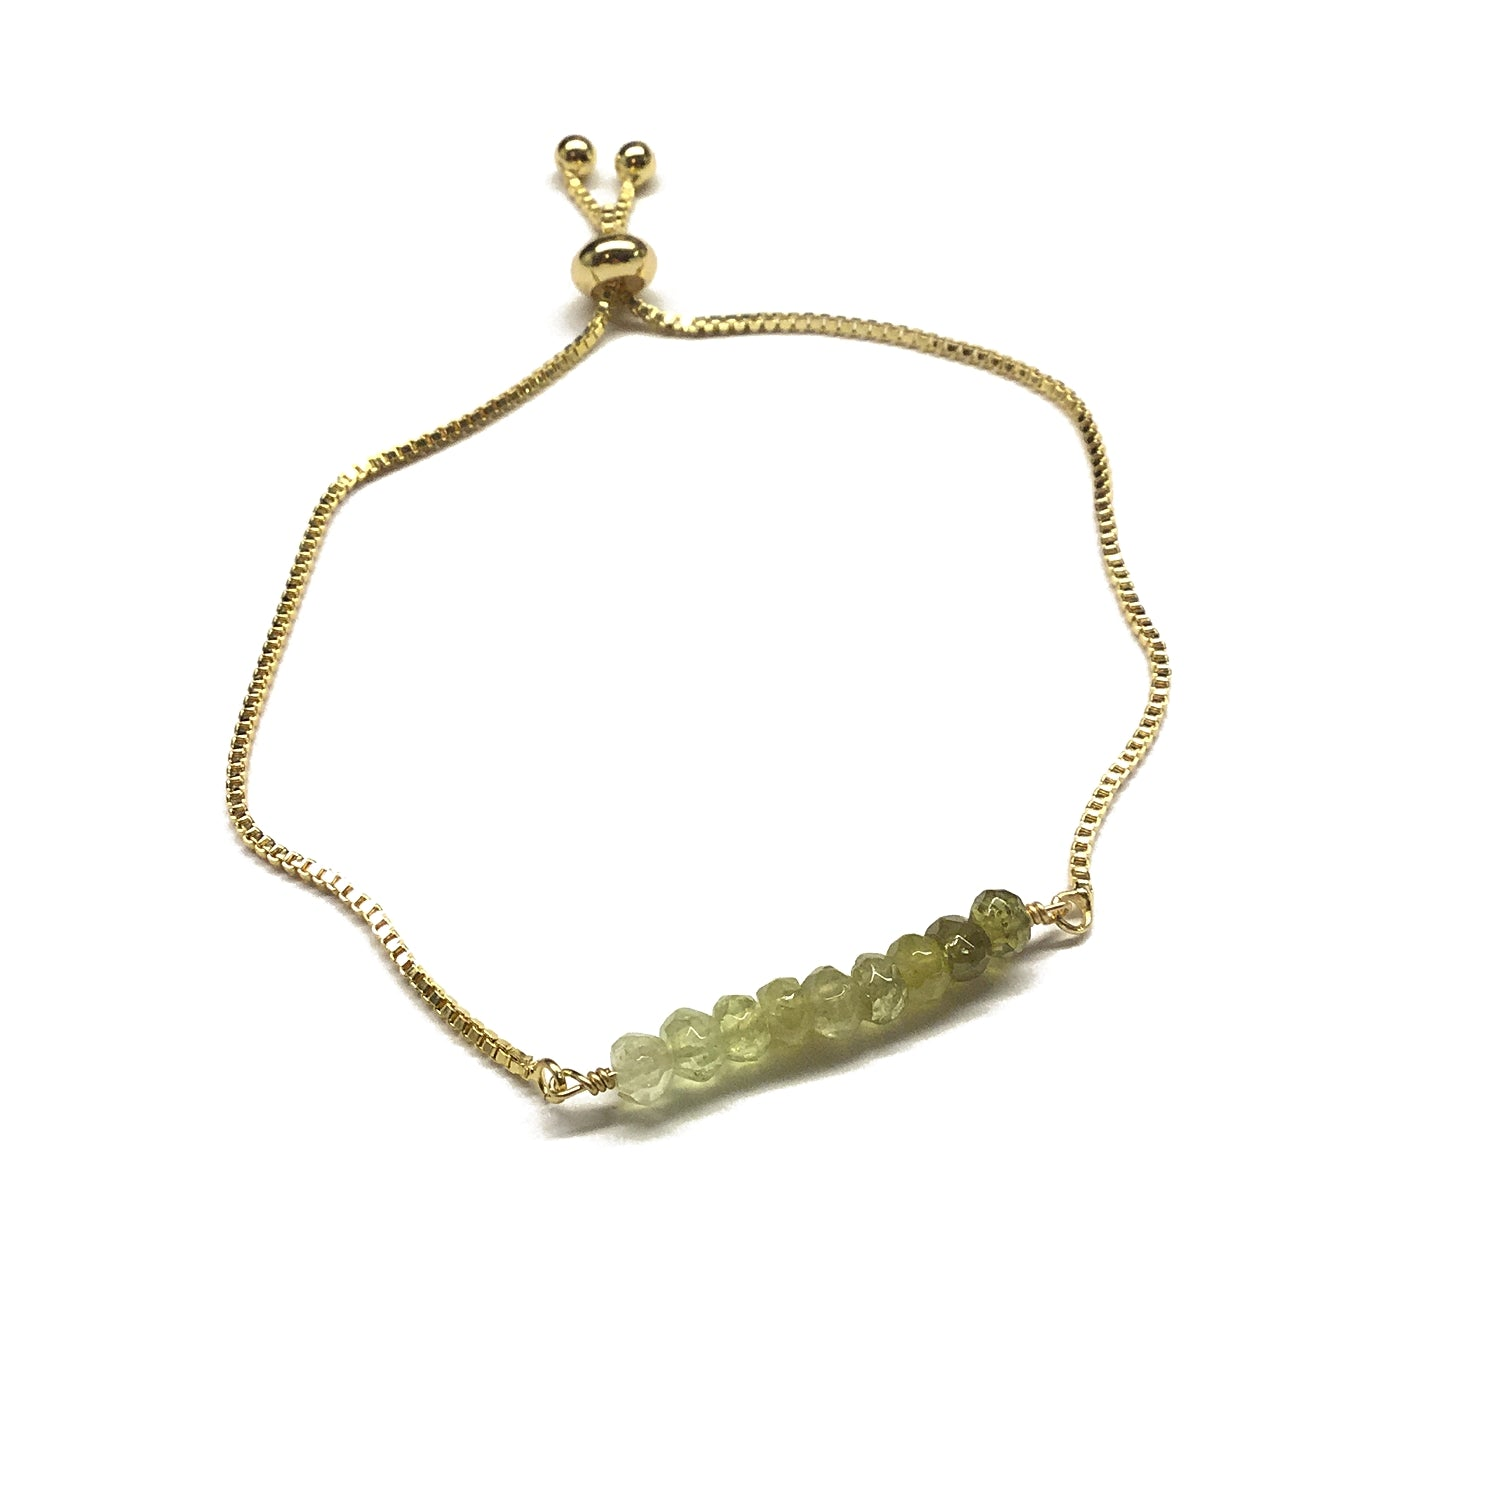 Natural green garnet gemstone bar gold stainless steel box chain adjustable bracelet